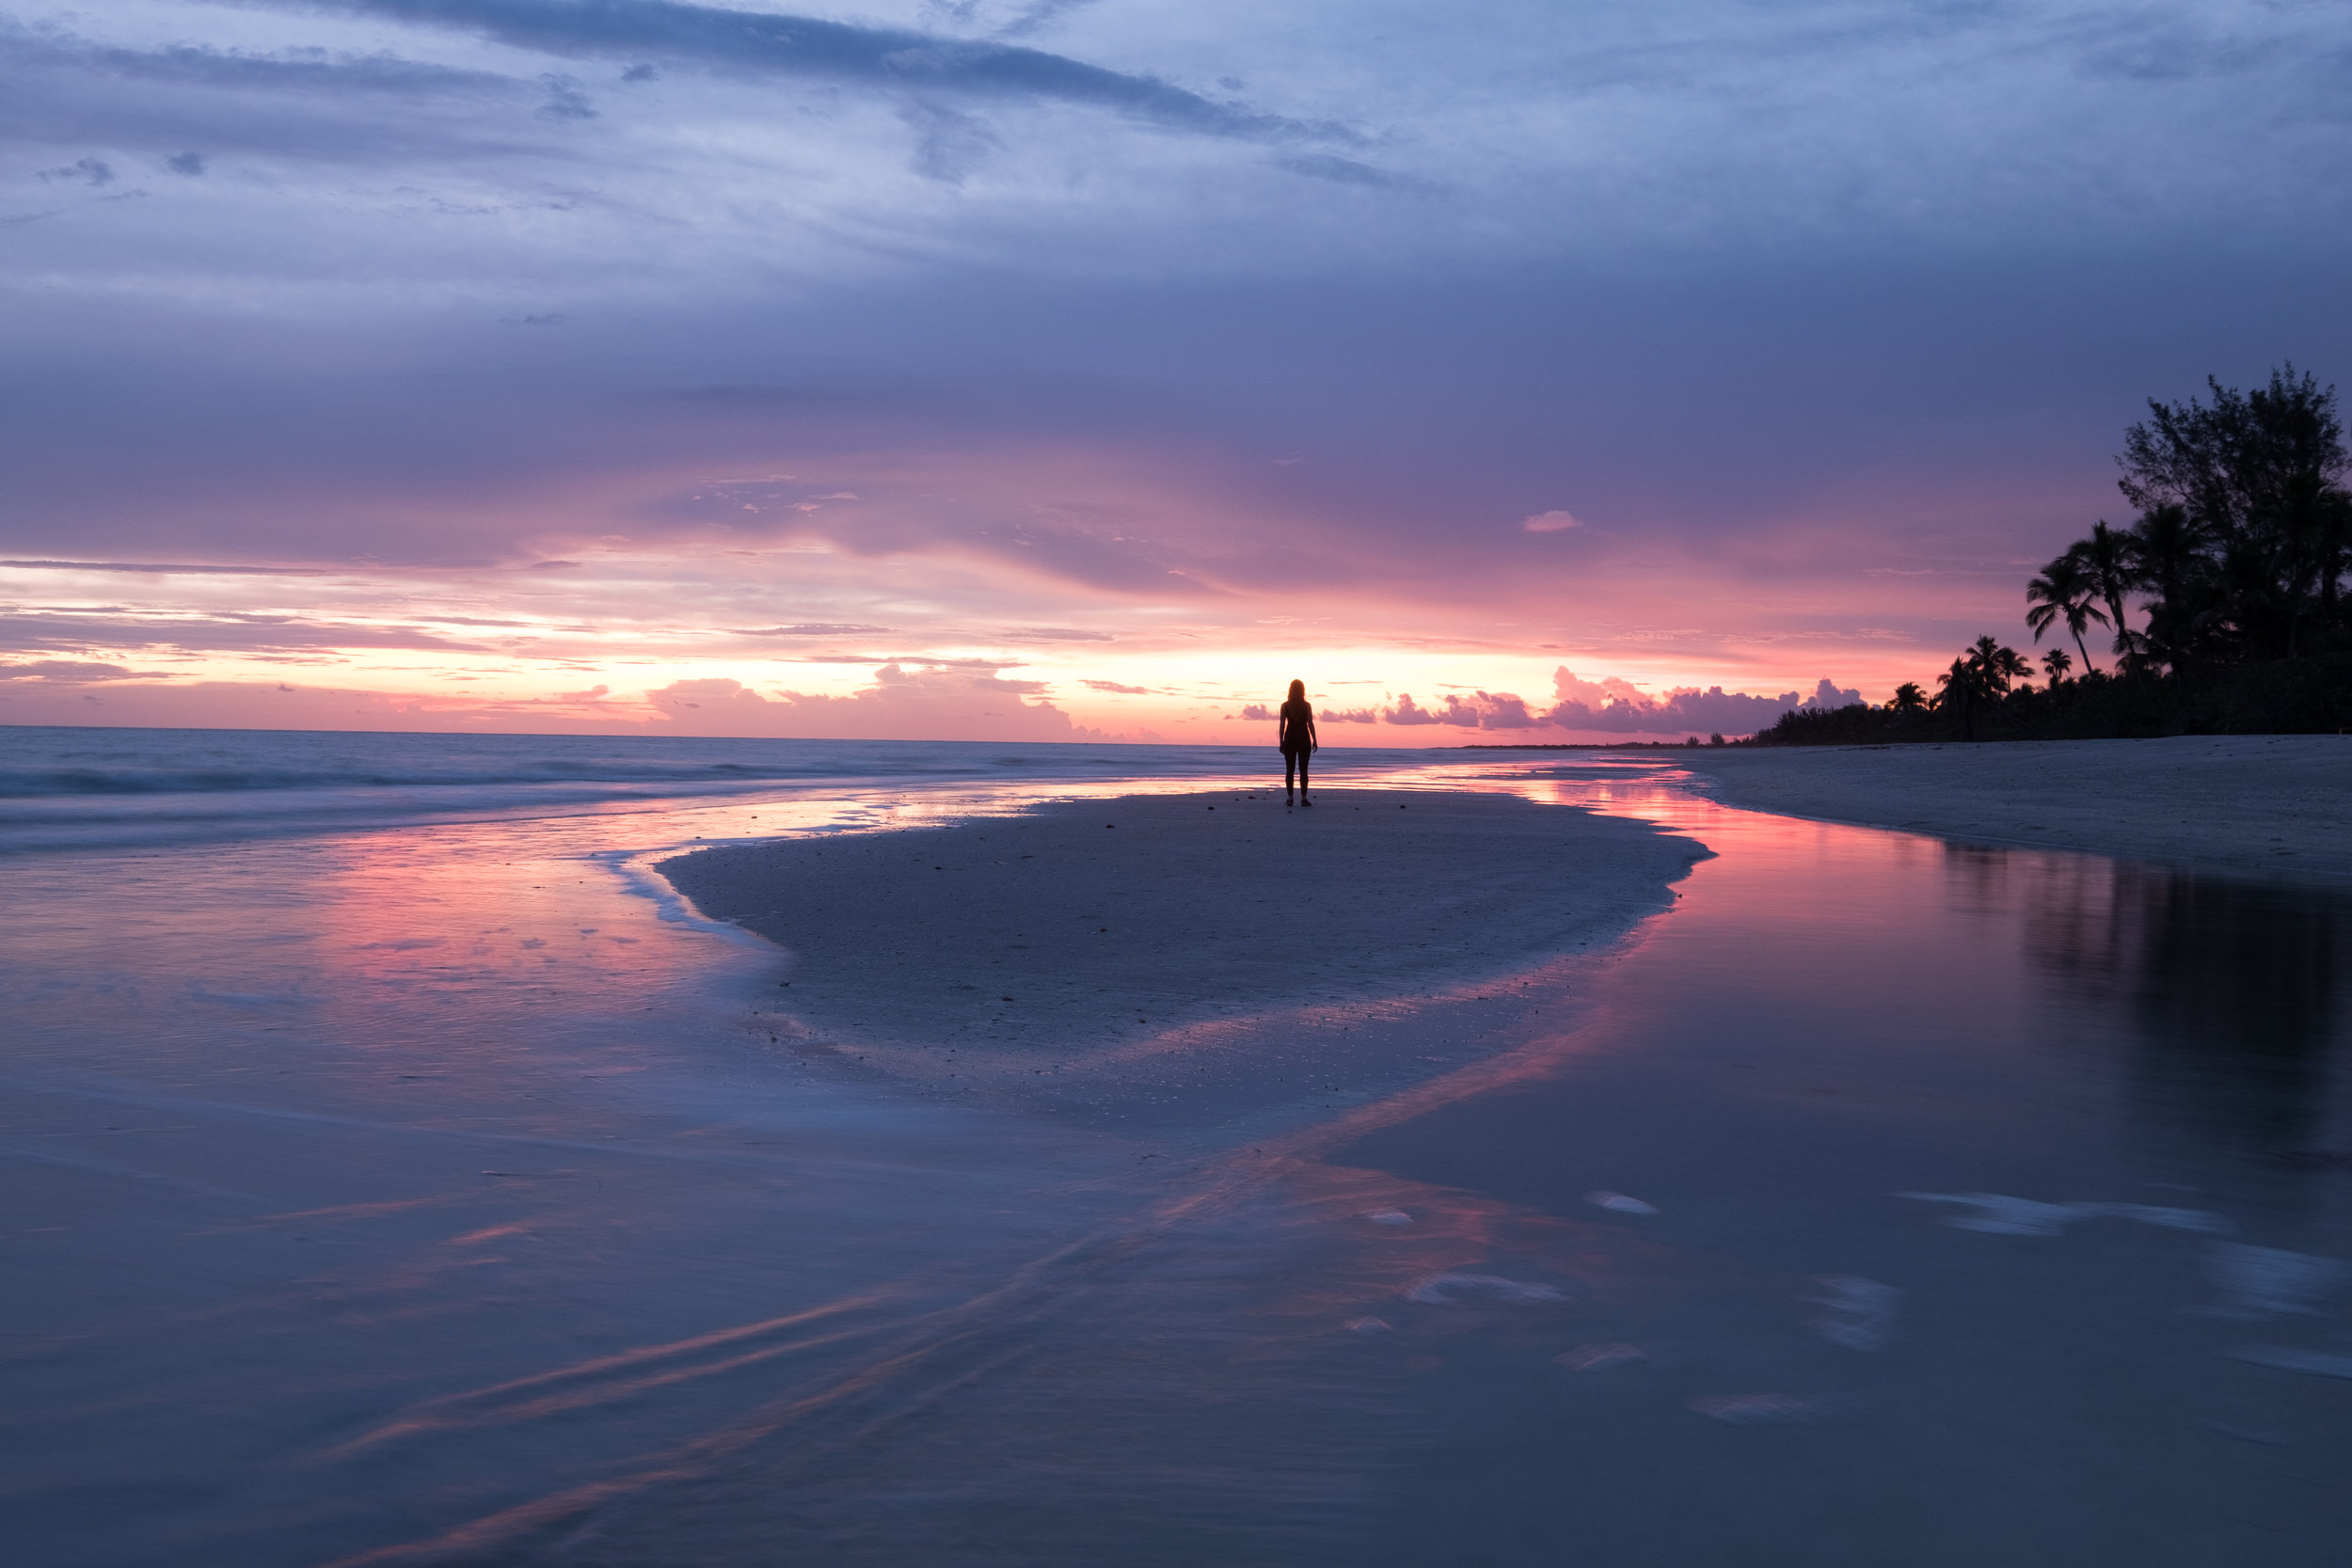 Sunset on Sanibel Island, low tide makes for the most interesting compositions.